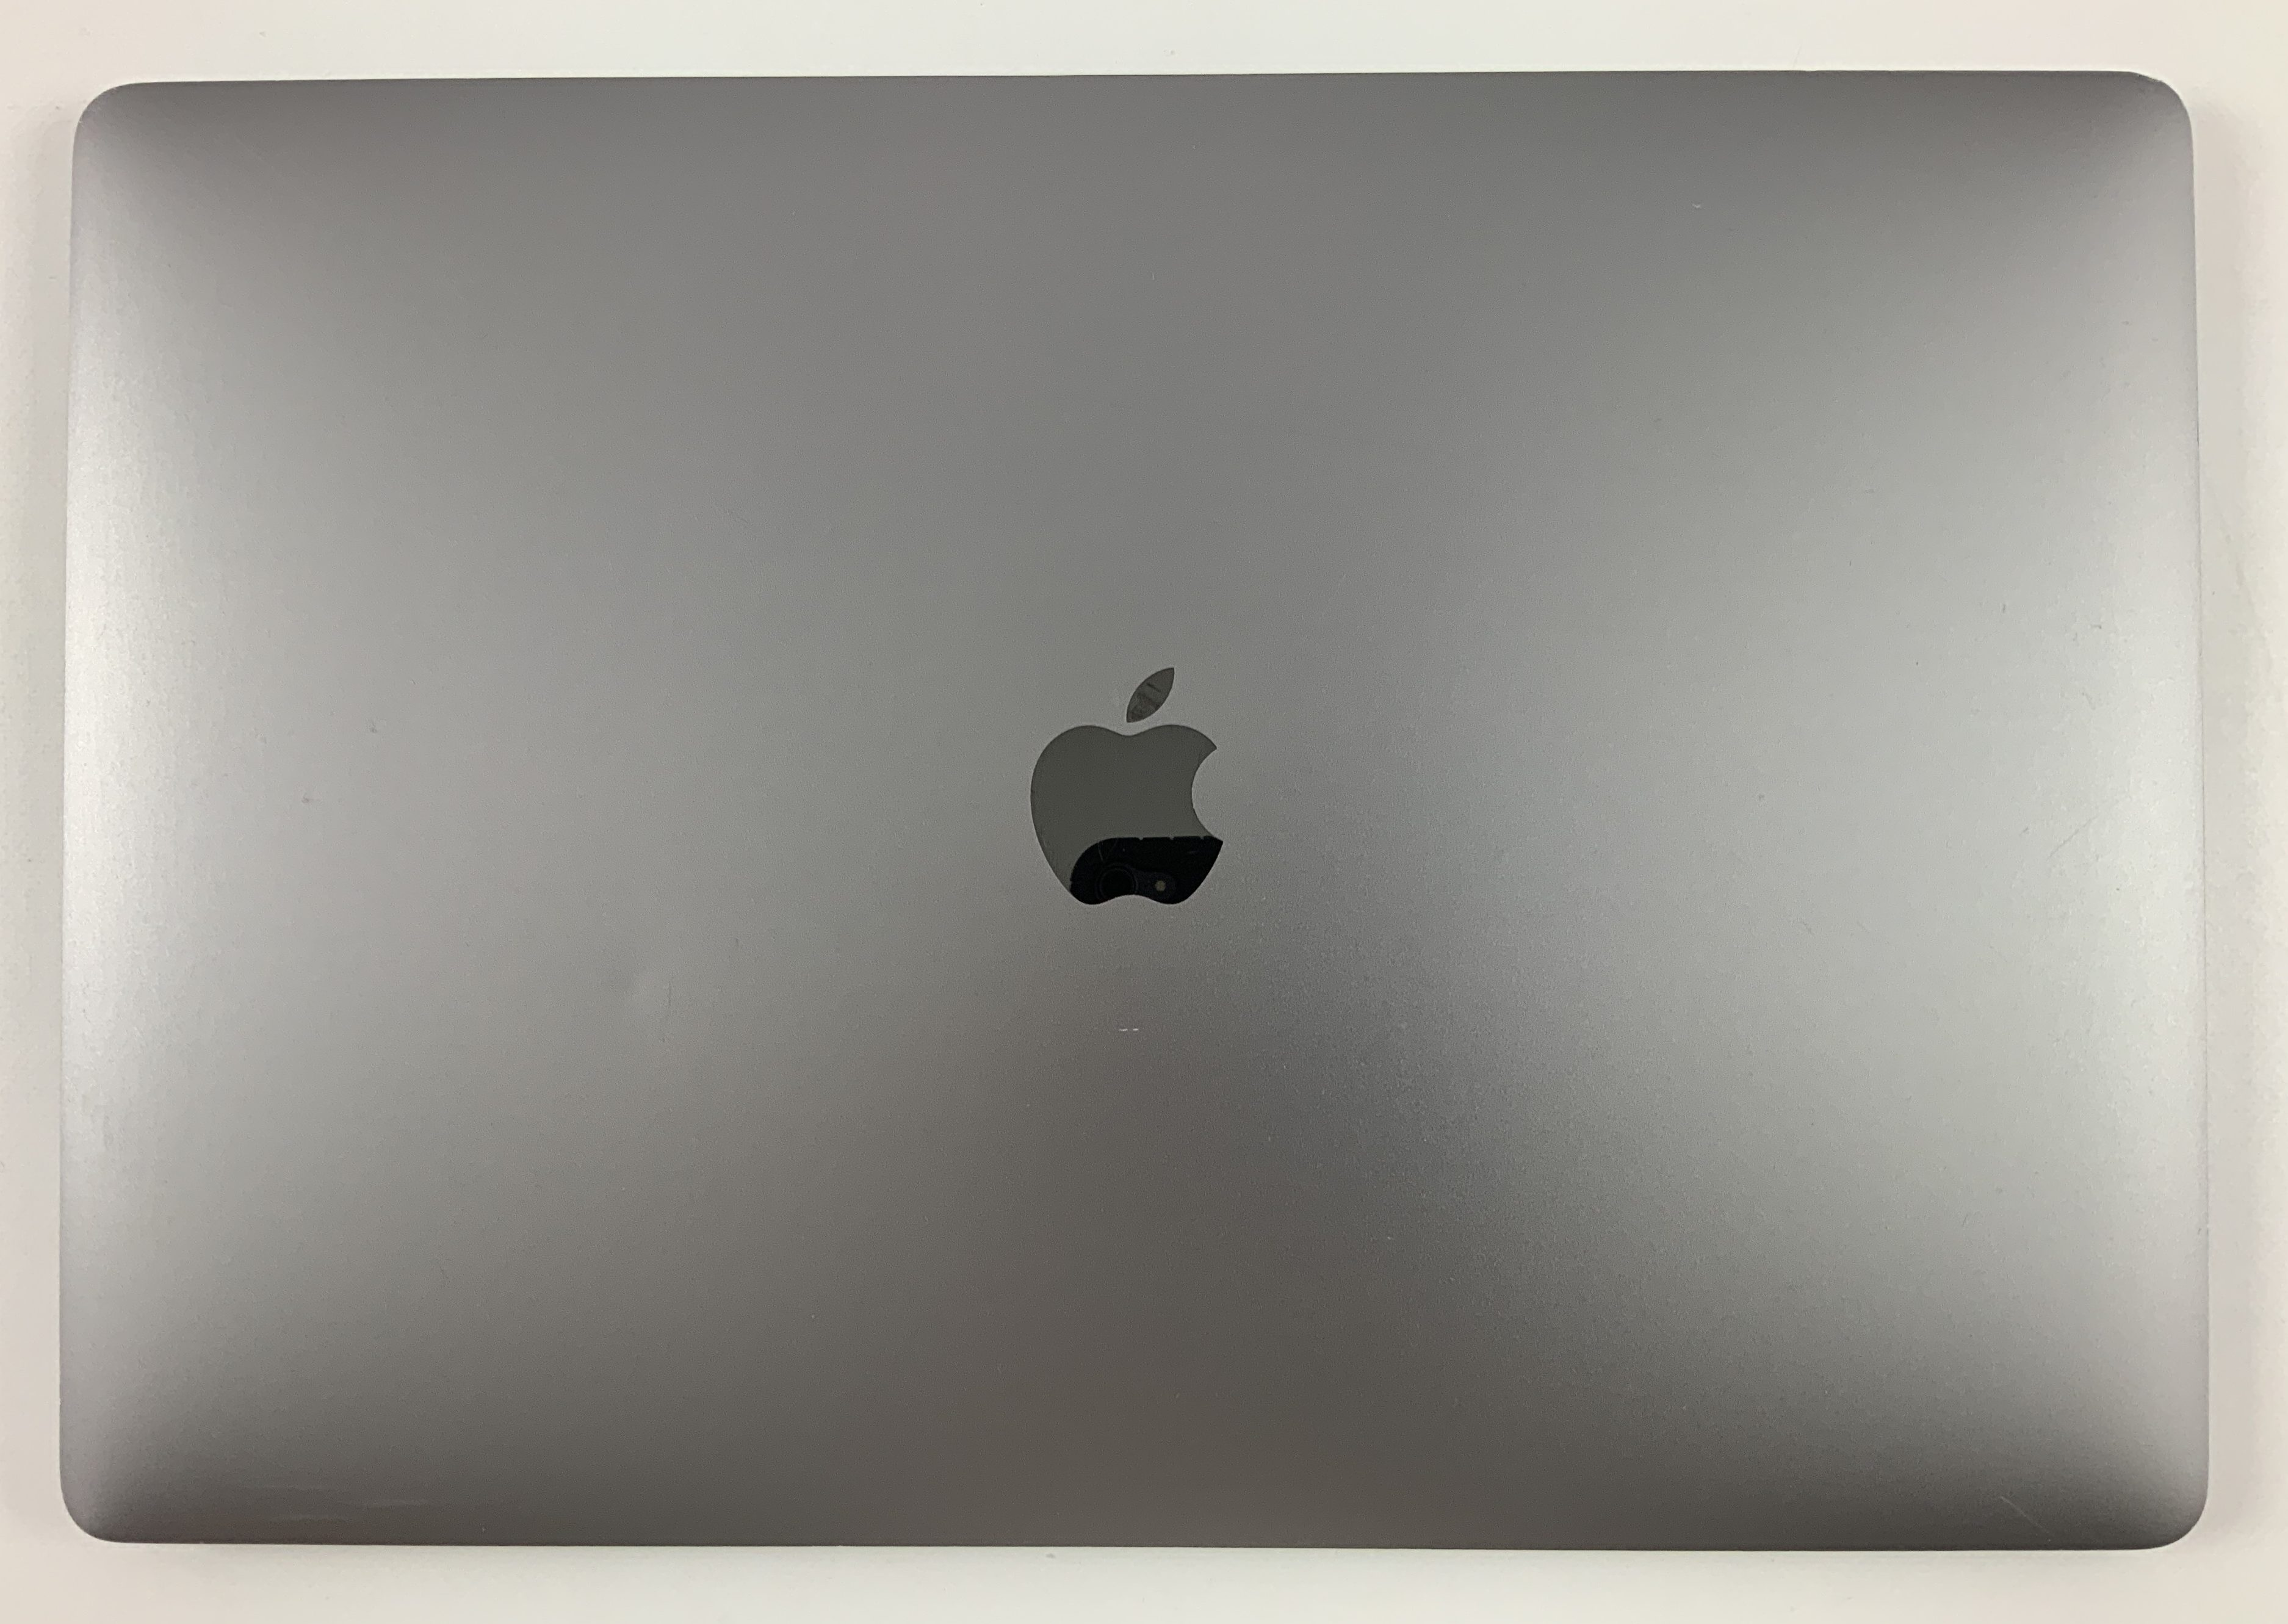 "MacBook Pro 15"" Touch Bar Late 2016 (Intel Quad-Core i7 2.6 GHz 16 GB RAM 1 TB SSD), Space Gray, Intel Quad-Core i7 2.6 GHz, 16 GB RAM, 1 TB SSD, image 2"